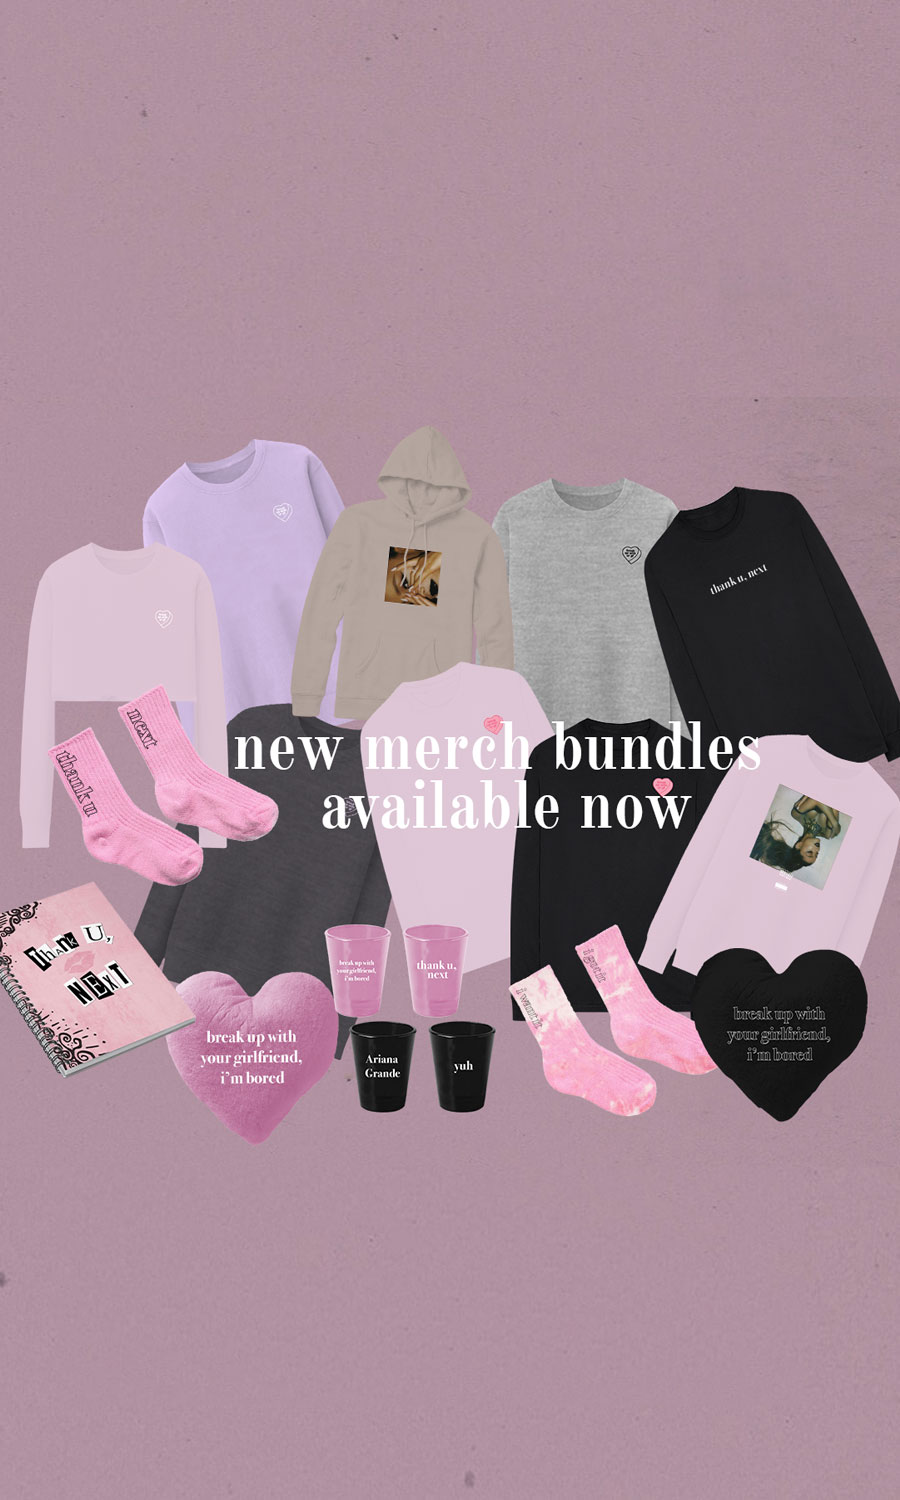 merch bundles available now